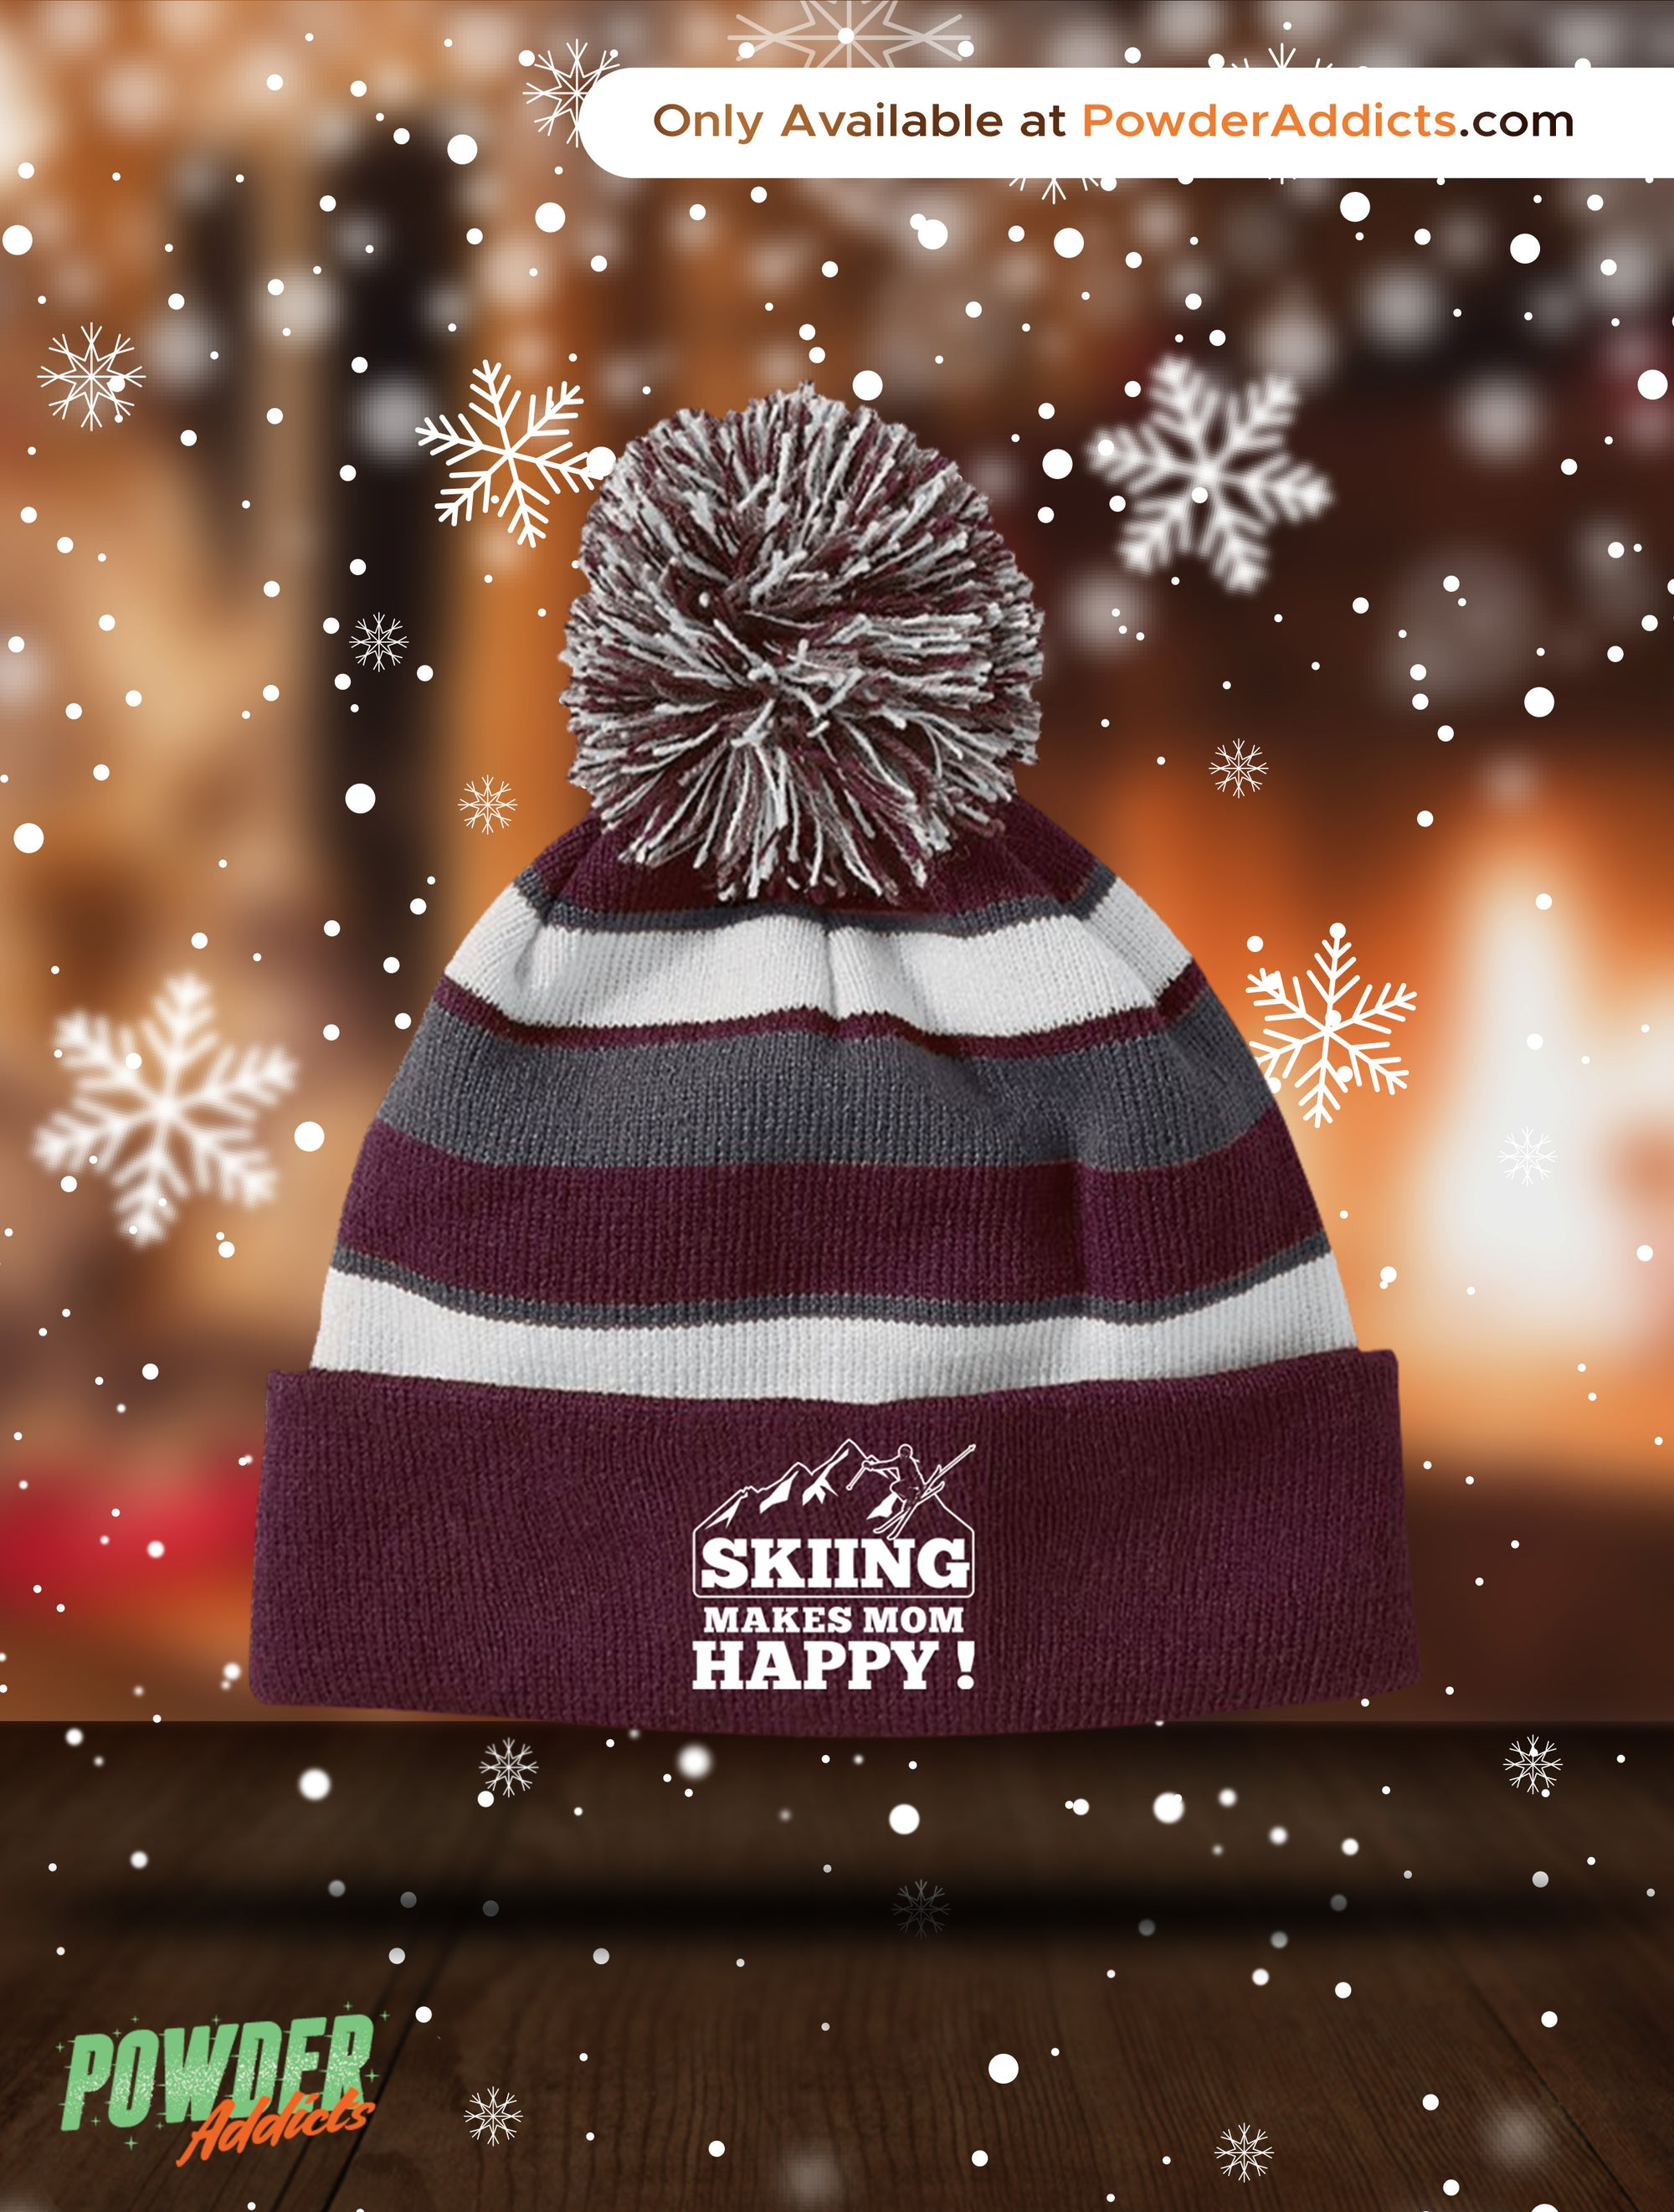 Skiing Makes Mom Happy Striped Beanie - Powderaddicts